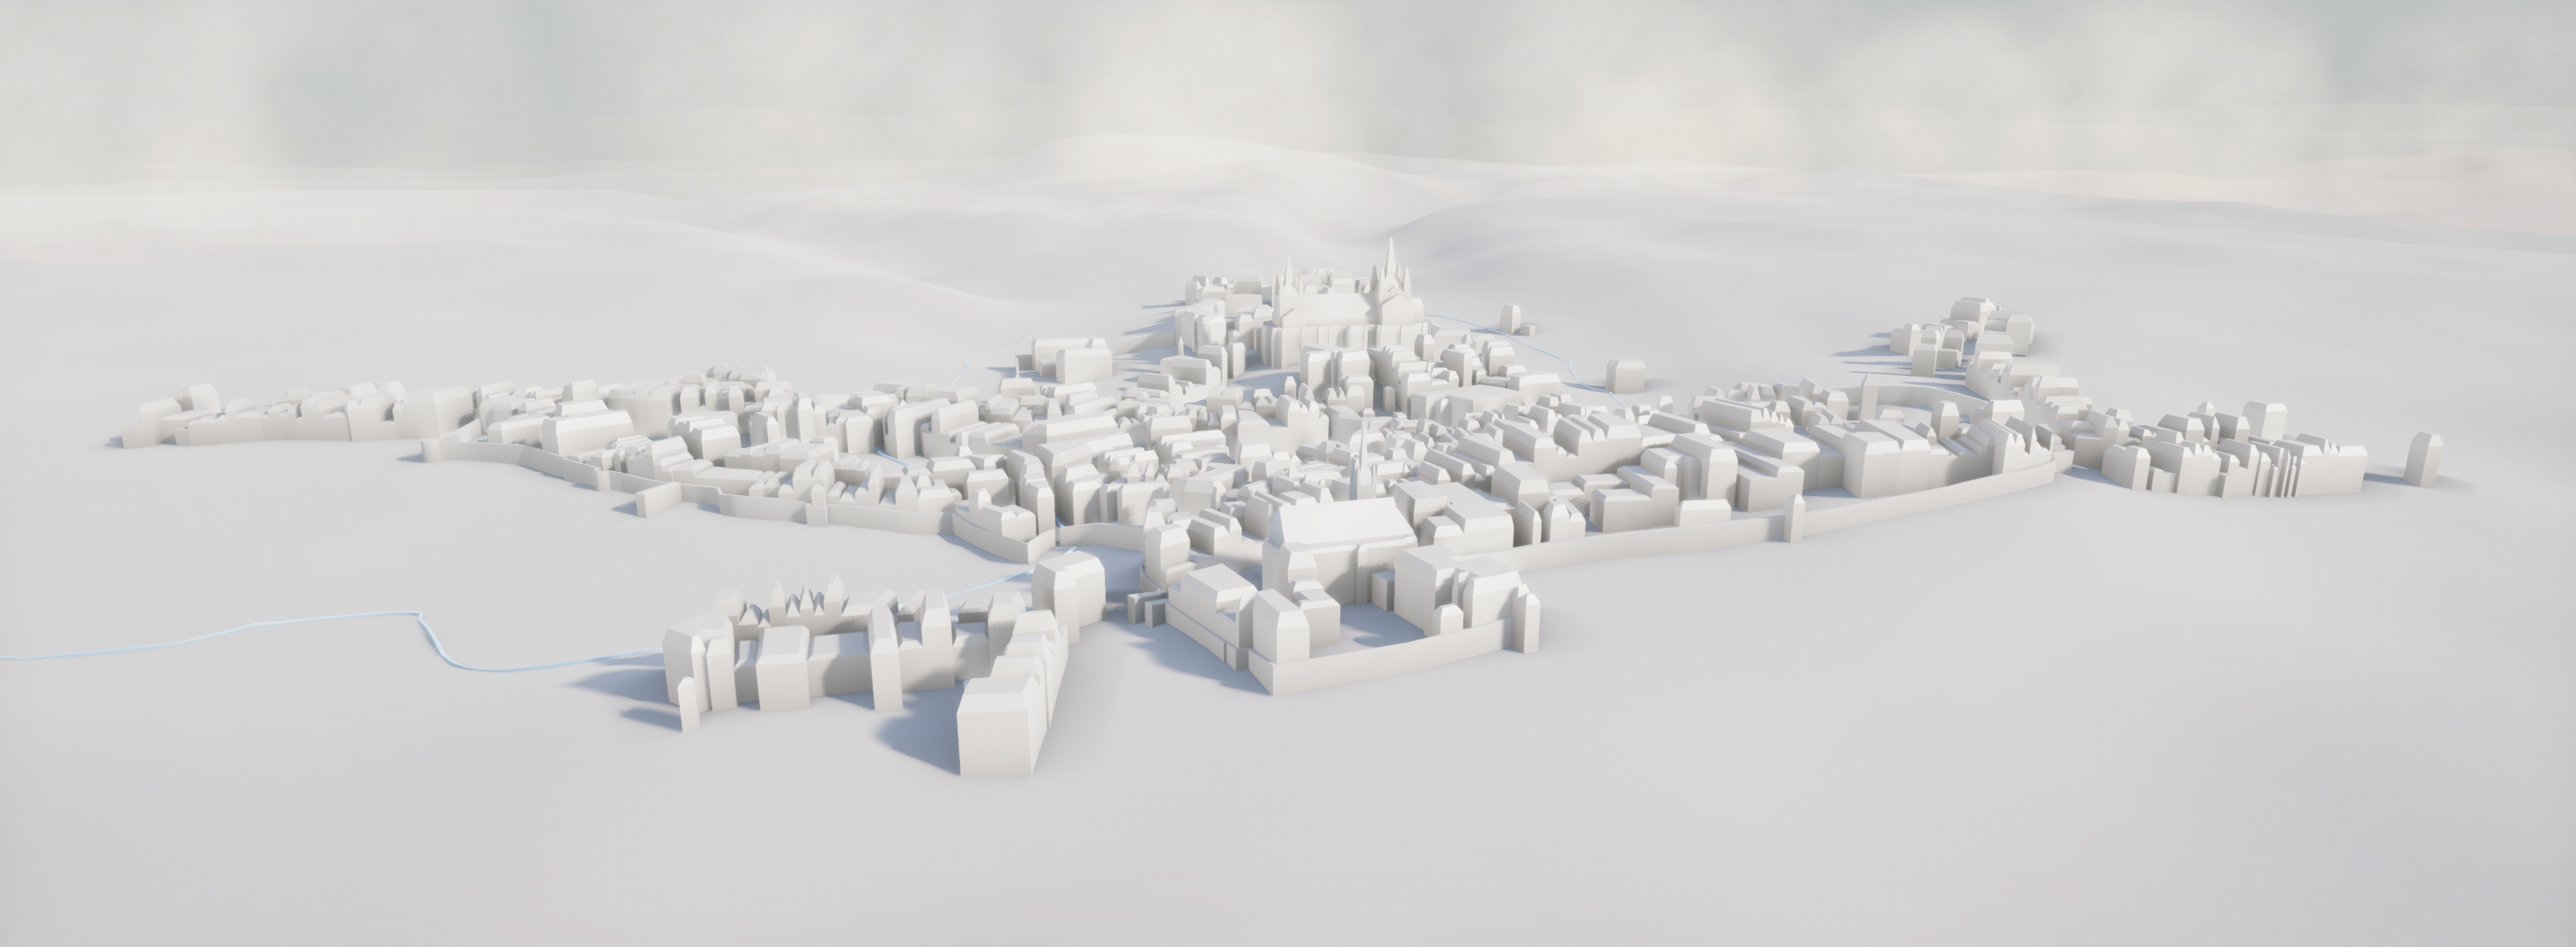 image Lausanne_Daylight_V2.png (4.0MB)